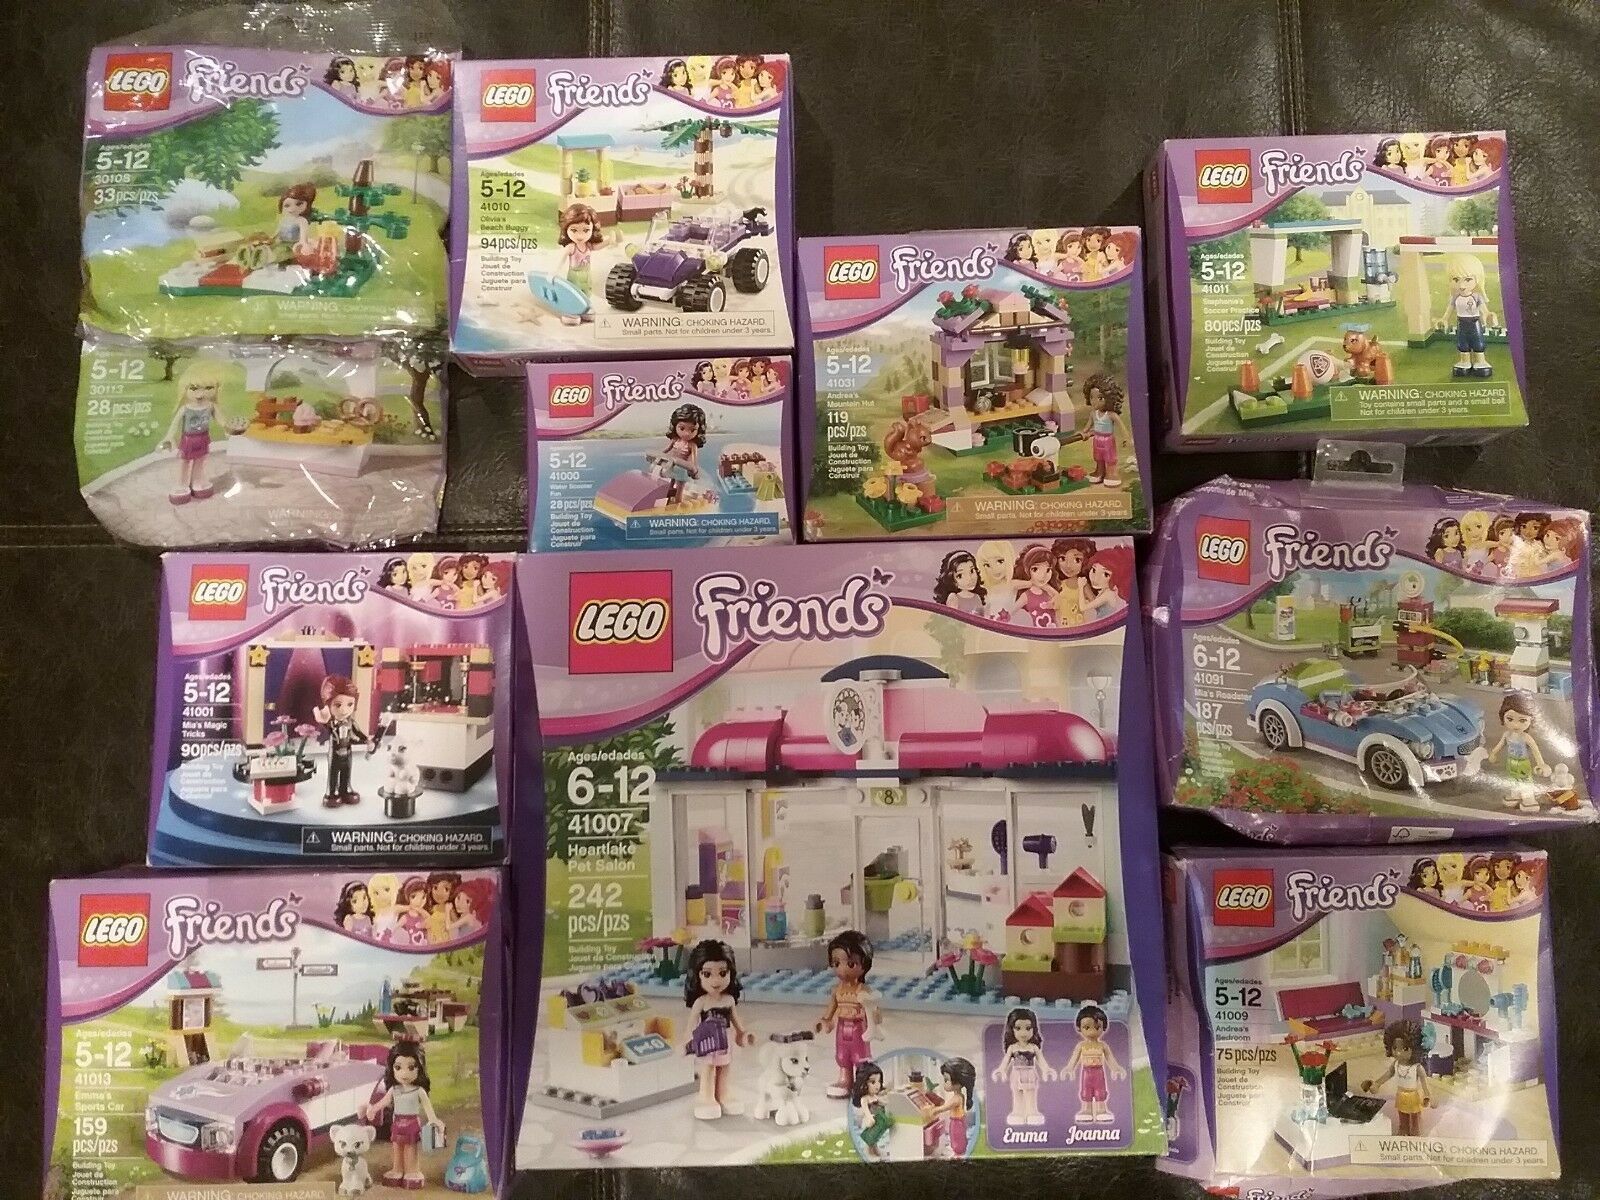 Lego Friends Badezimmer Badmöbel Set Novel